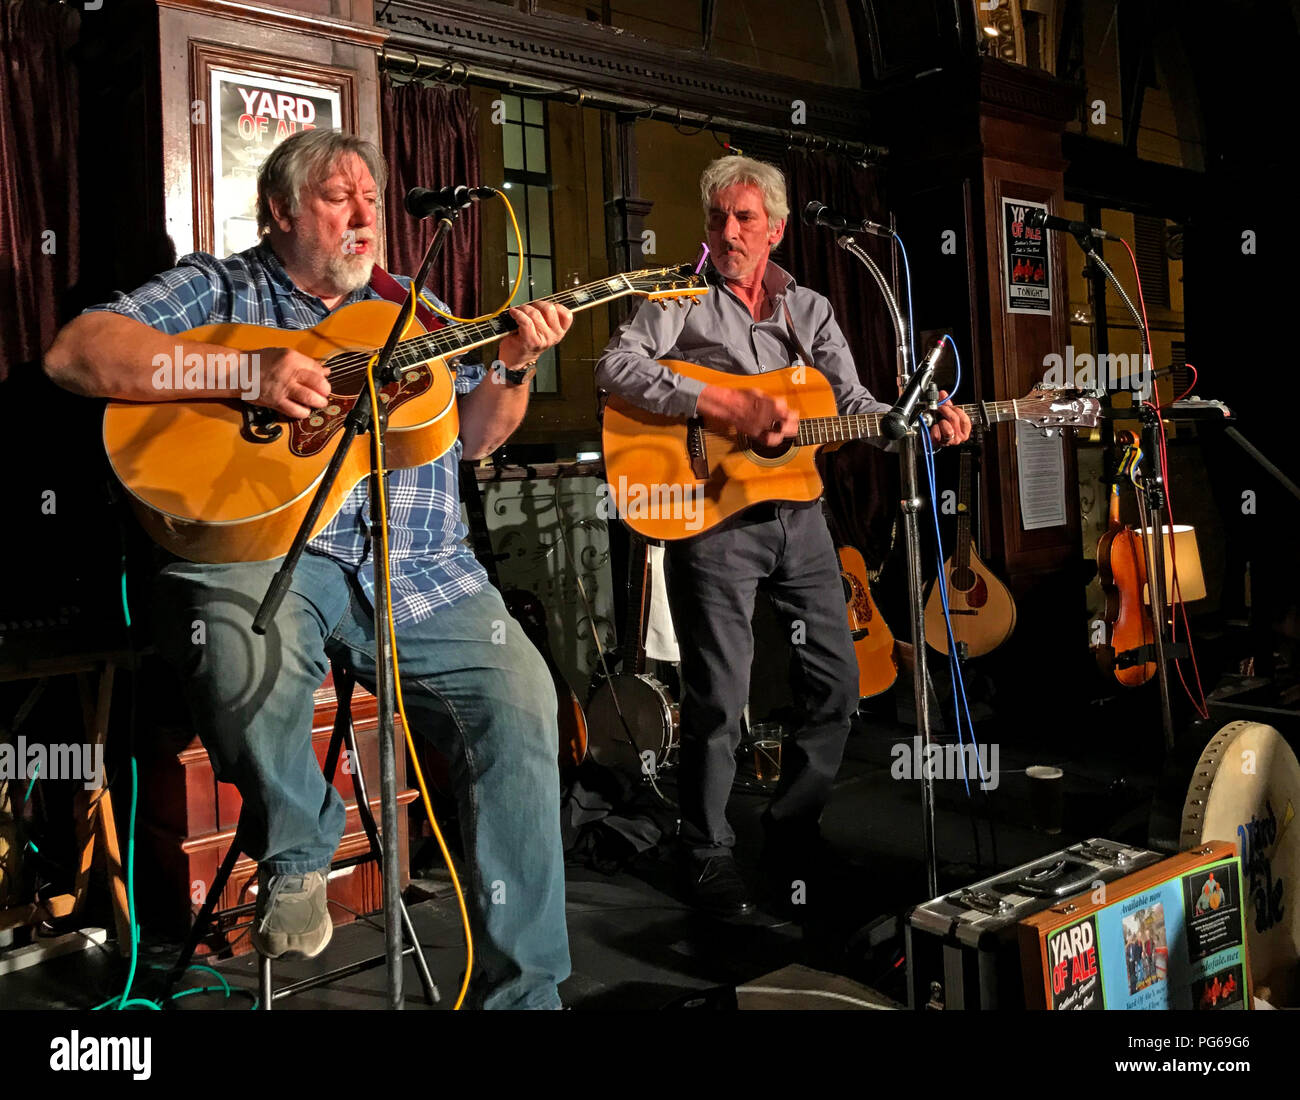 Yard of Ale, Folk & Blues band, playing live at the Guildford Arms, West Register Place, Edinburgh City Centre, Scotland, UK - Stock Image